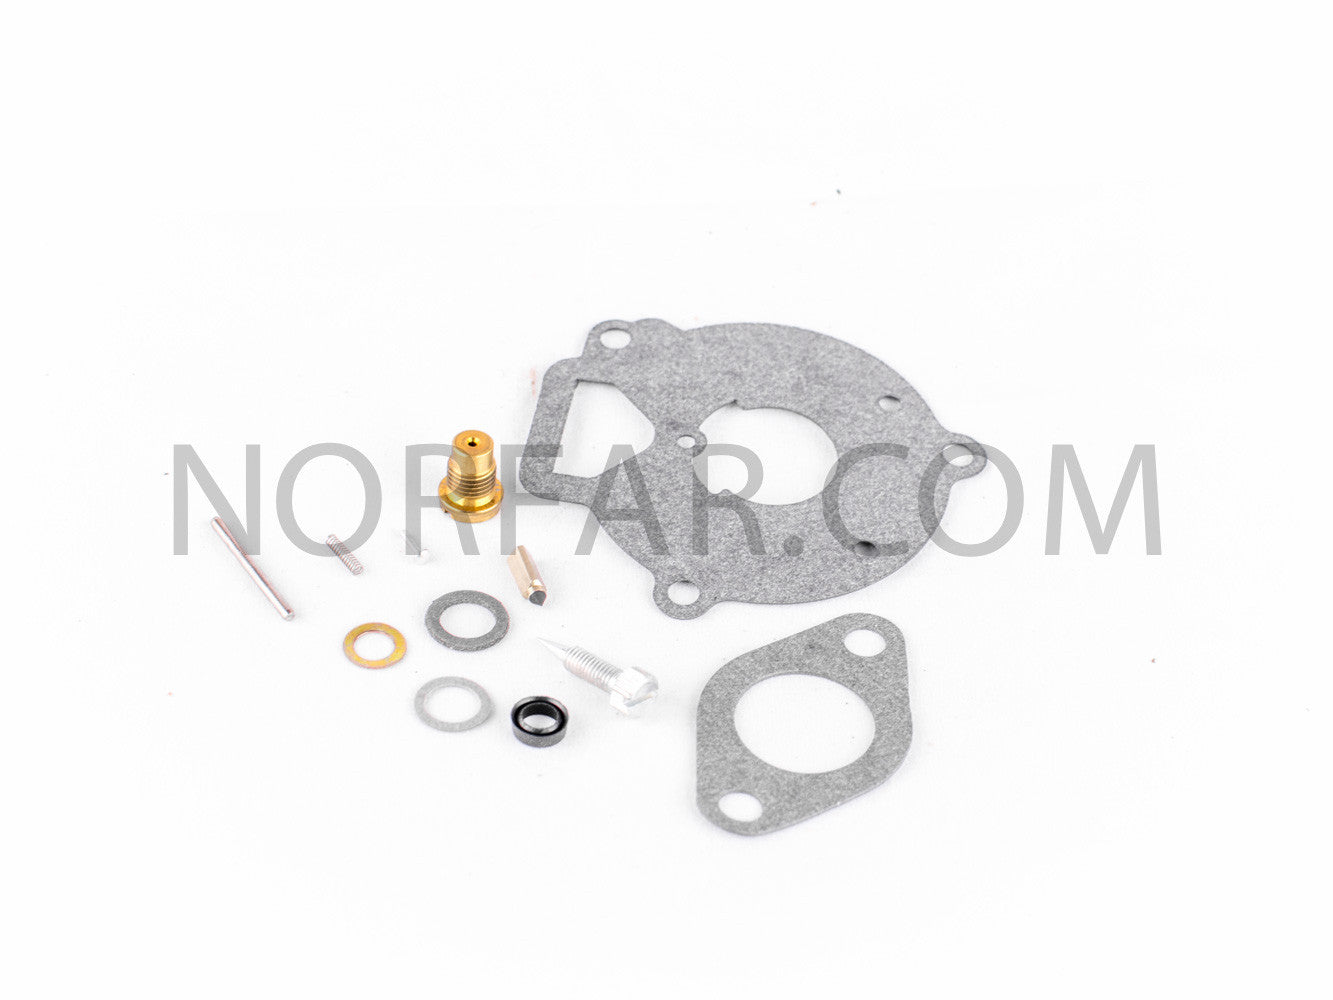 Zenith carburetor kits norfar zenith k2121 carburetor kit ccuart Image collections